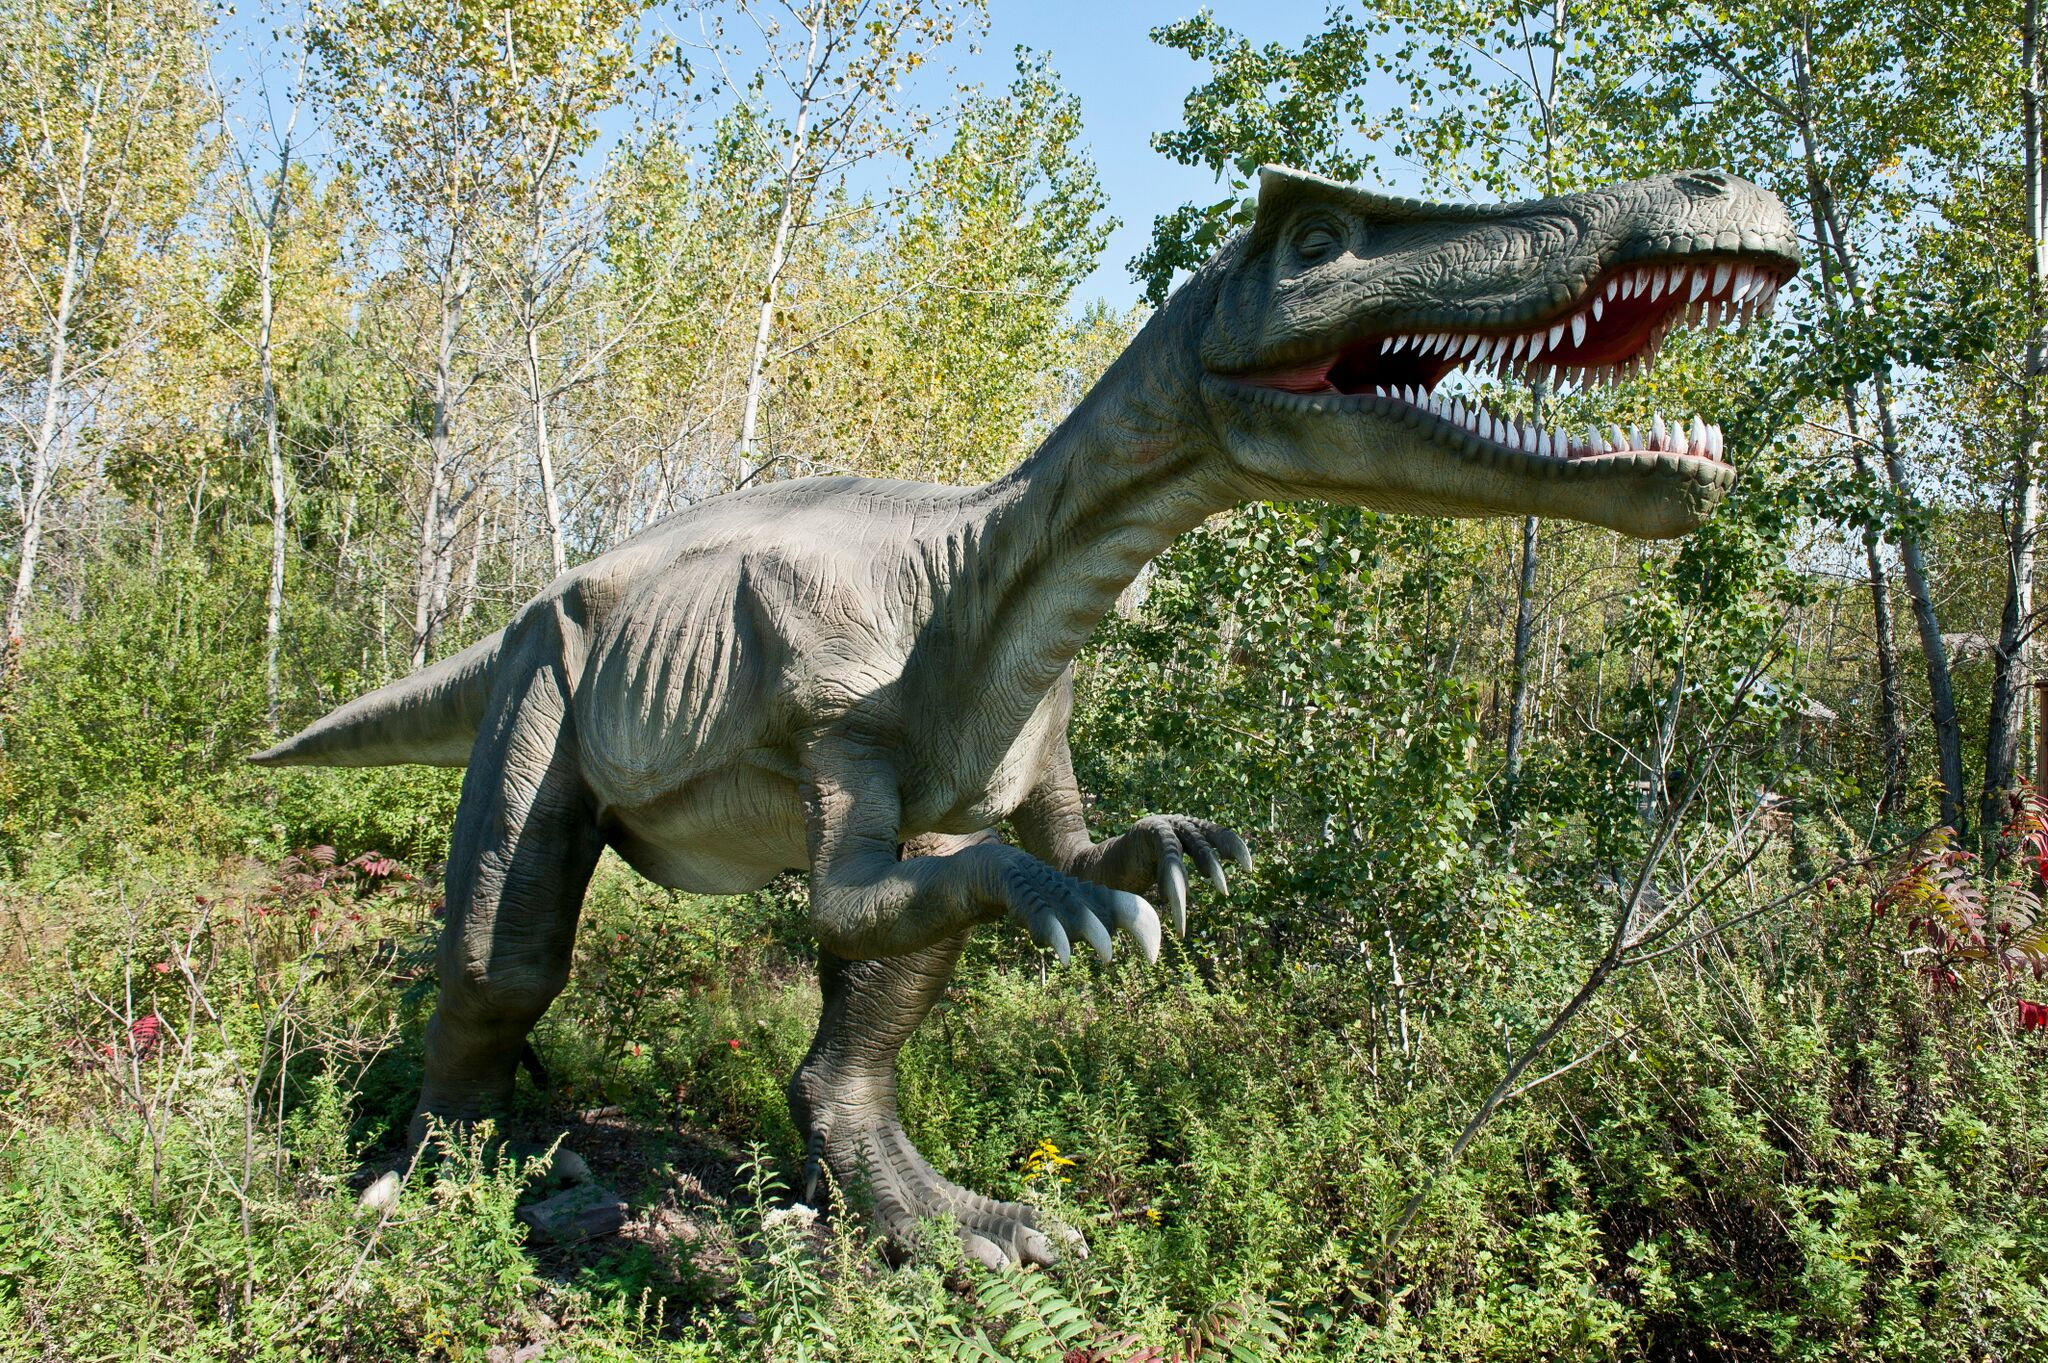 Largest dinosaur theme park opens in Wichita | Attractions